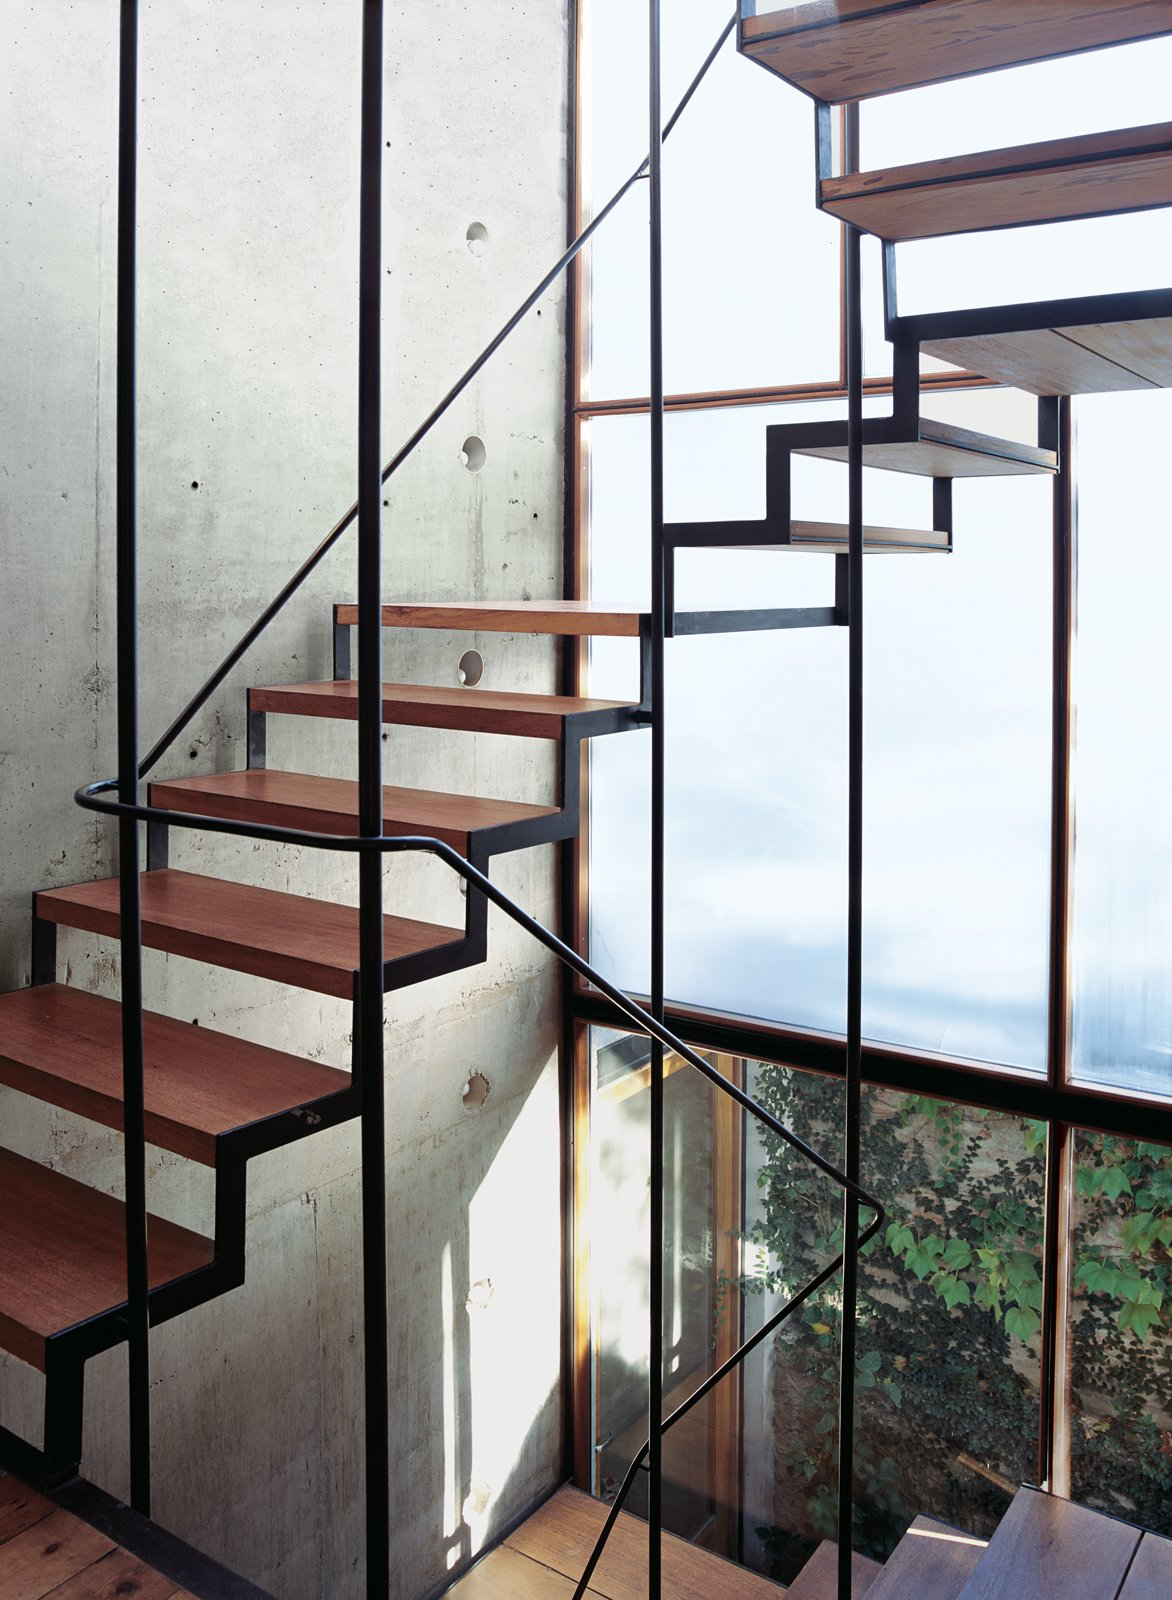 Staircase, Metal Railing, and Wood Tread The wood-and-steel open staircase wends its way up three stories, supported by a concrete structural wall embedded with PVC tubes and bare lightbulbs.  190+ Best Modern Staircase Ideas from Net Assets